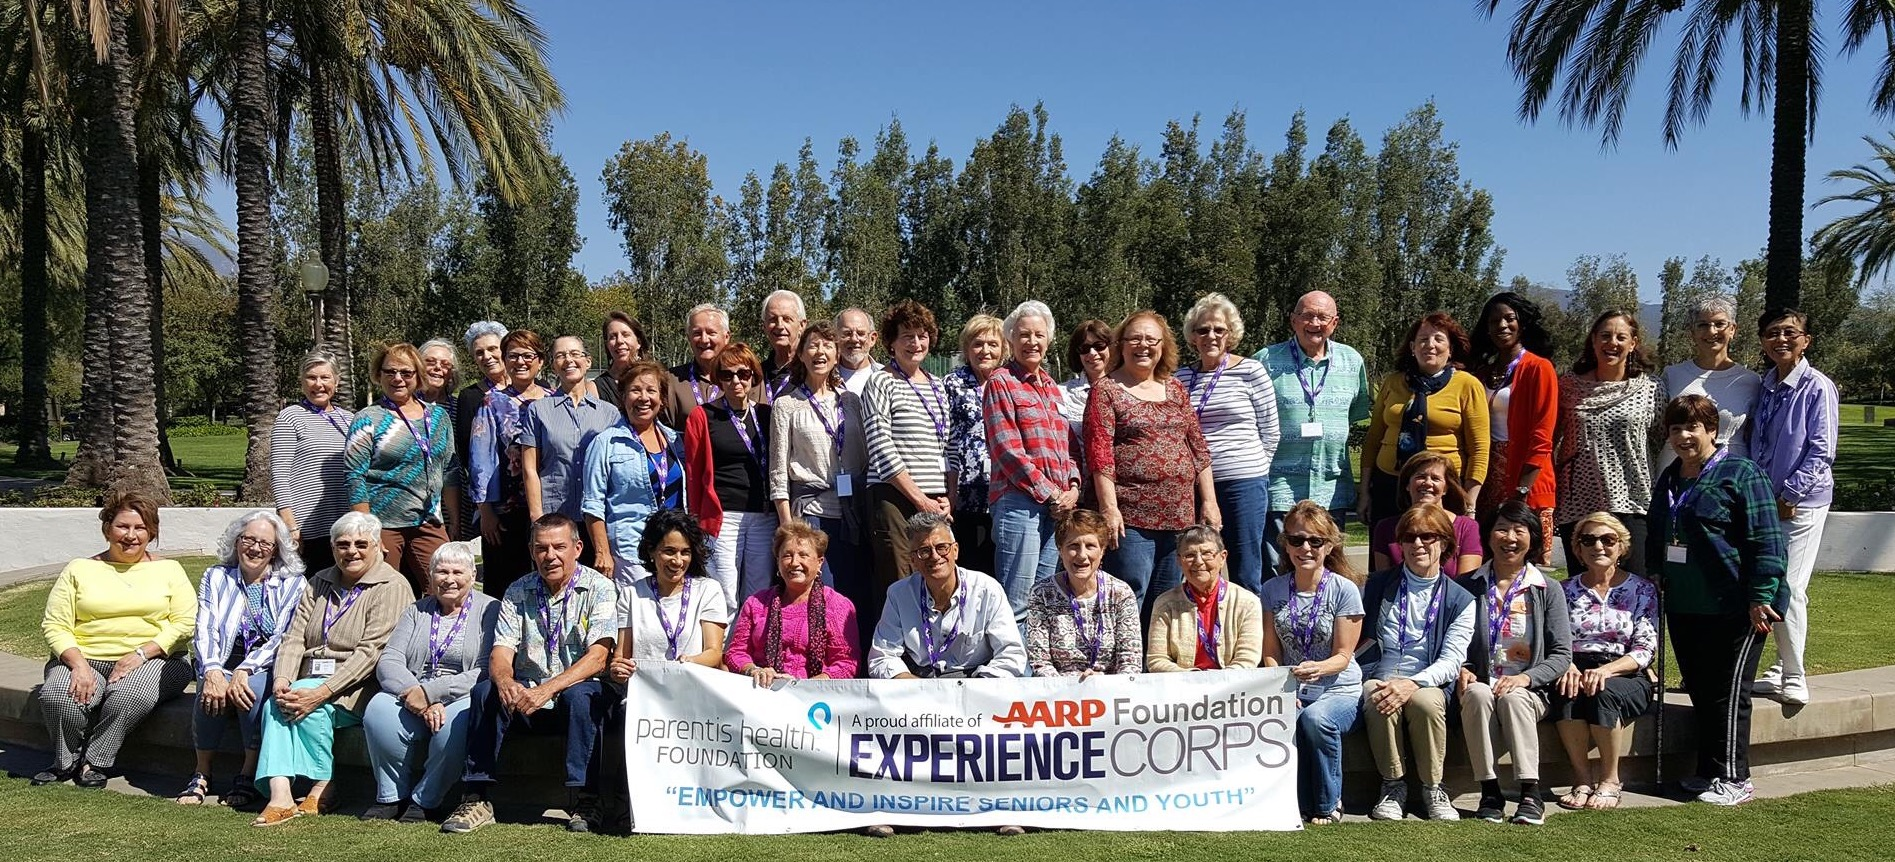 AARP Experience Corps tutors pose for a photo after completing their training over the summer. Photo: Courtesy of Karen Banse